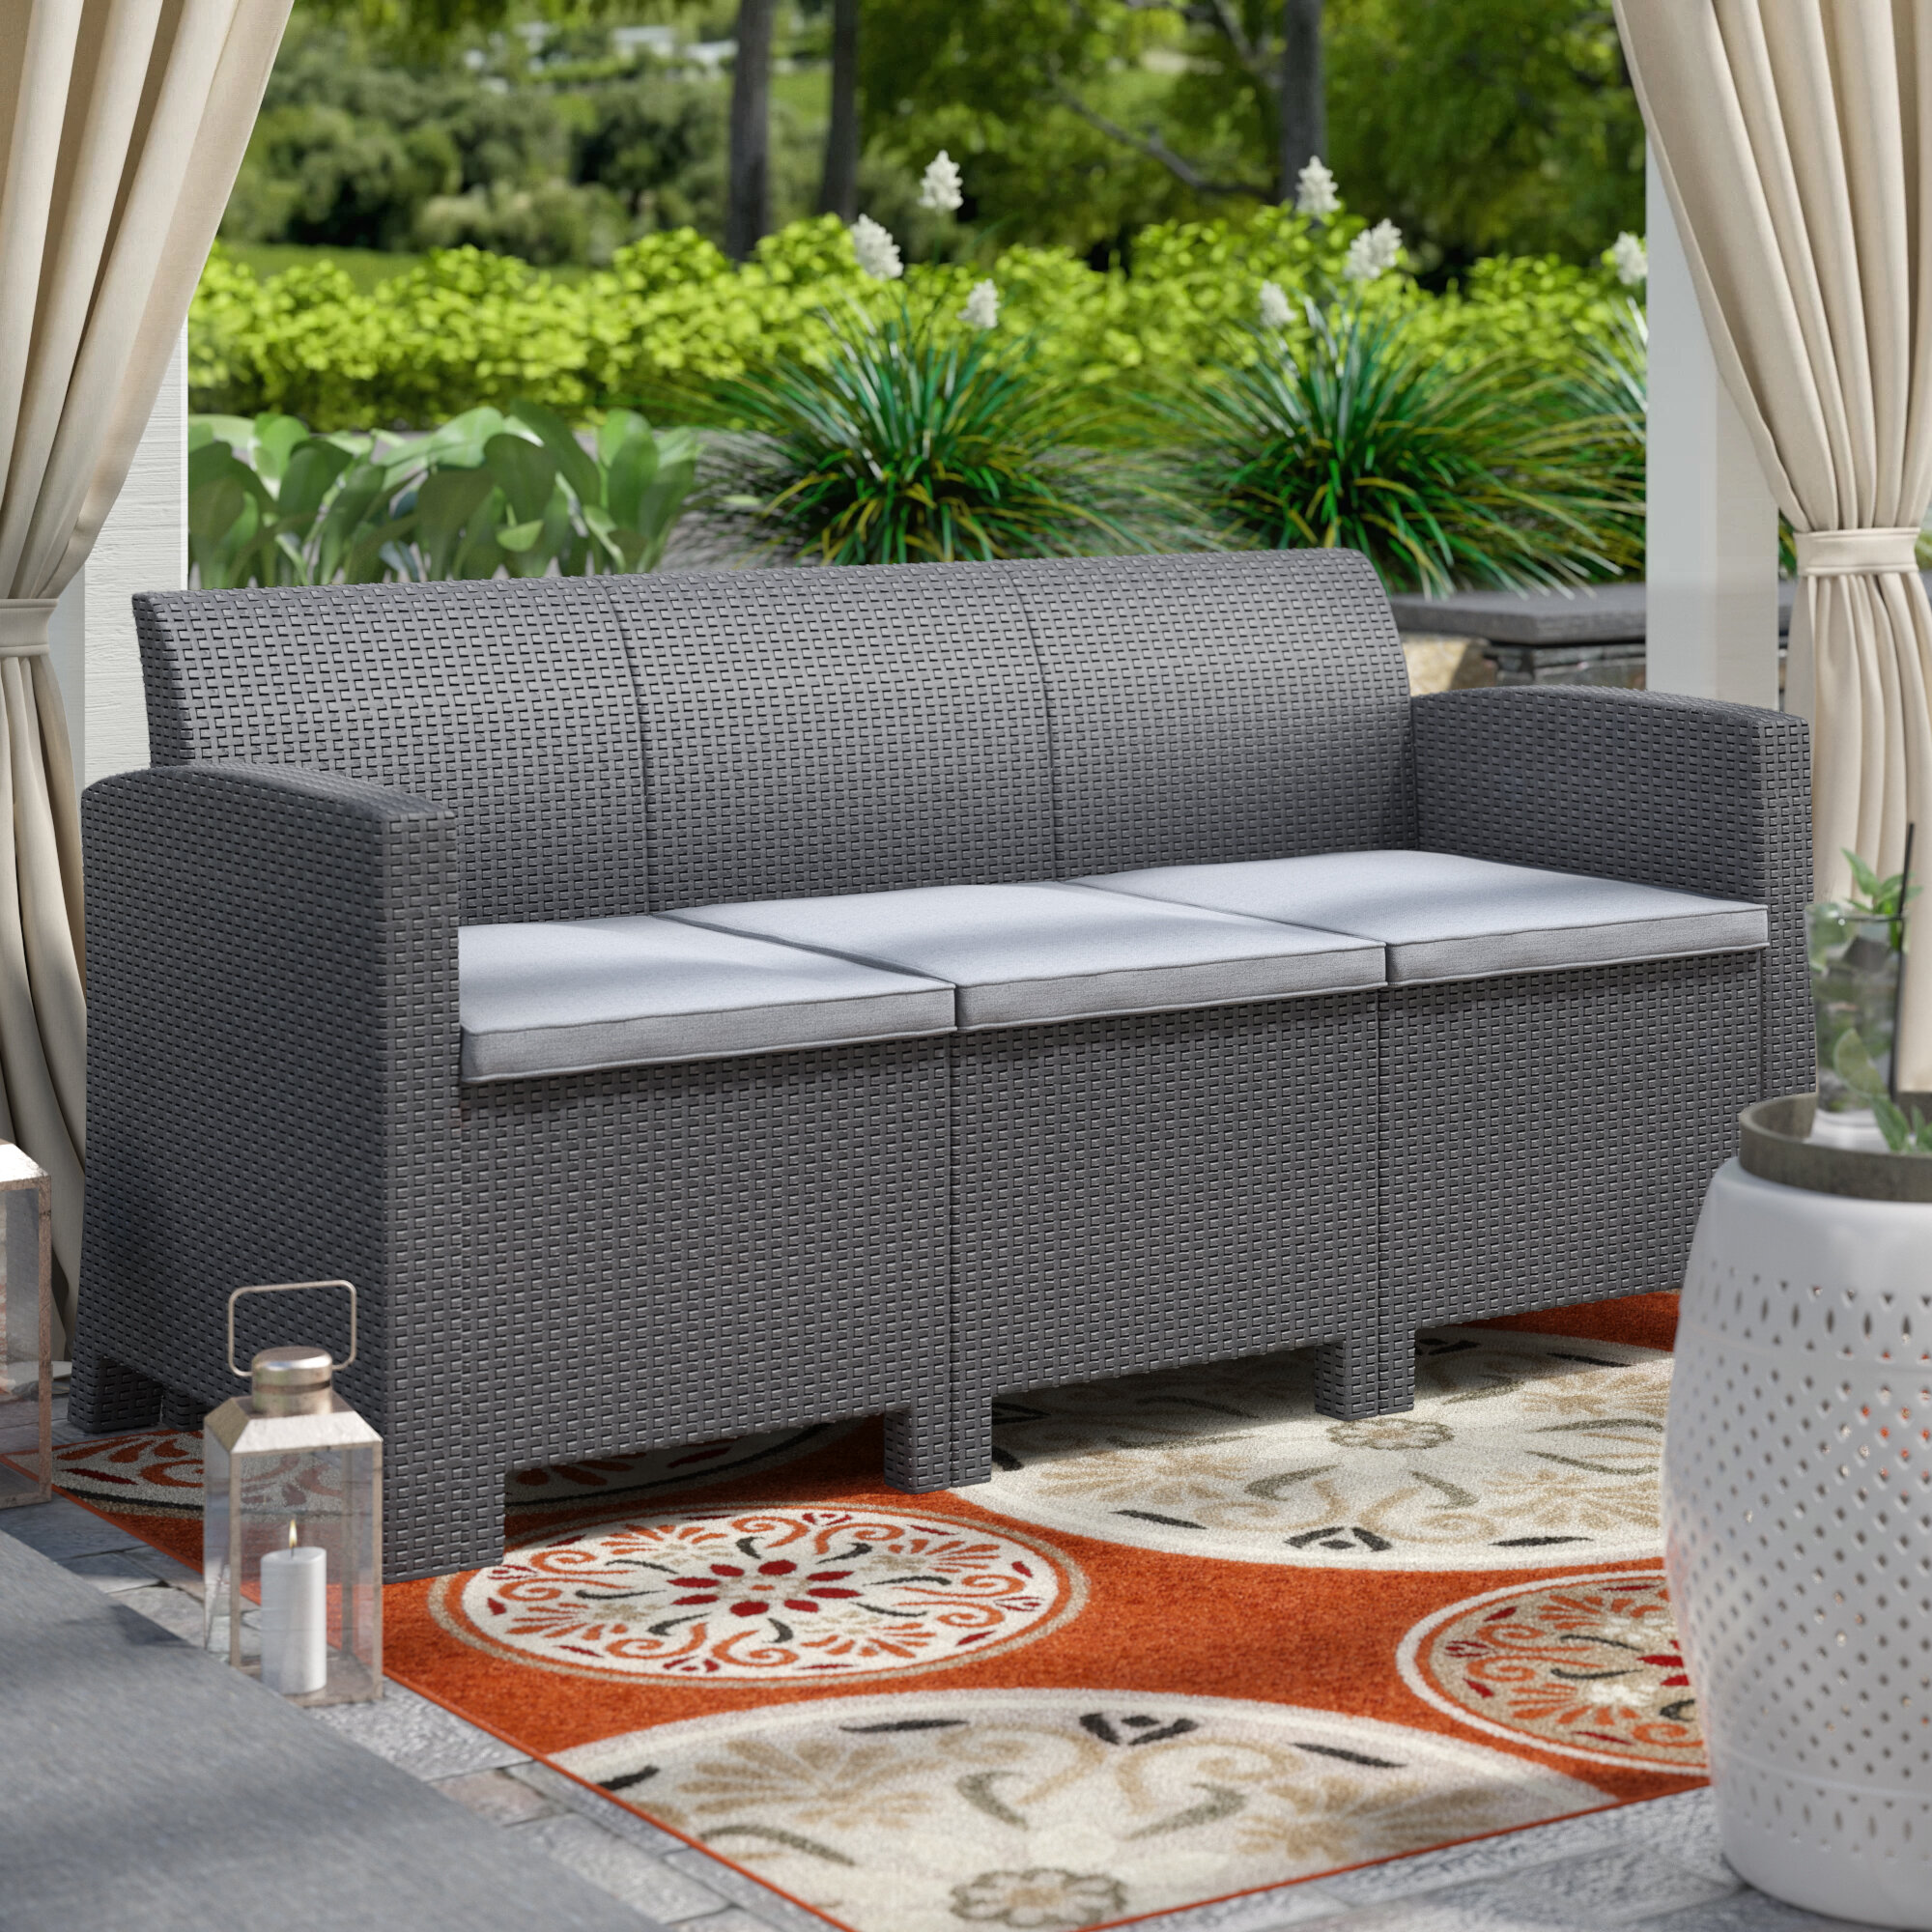 Highland Dunes Bartonville Outdoor Patio Sofa With Cushions U0026 Reviews |  Wayfair